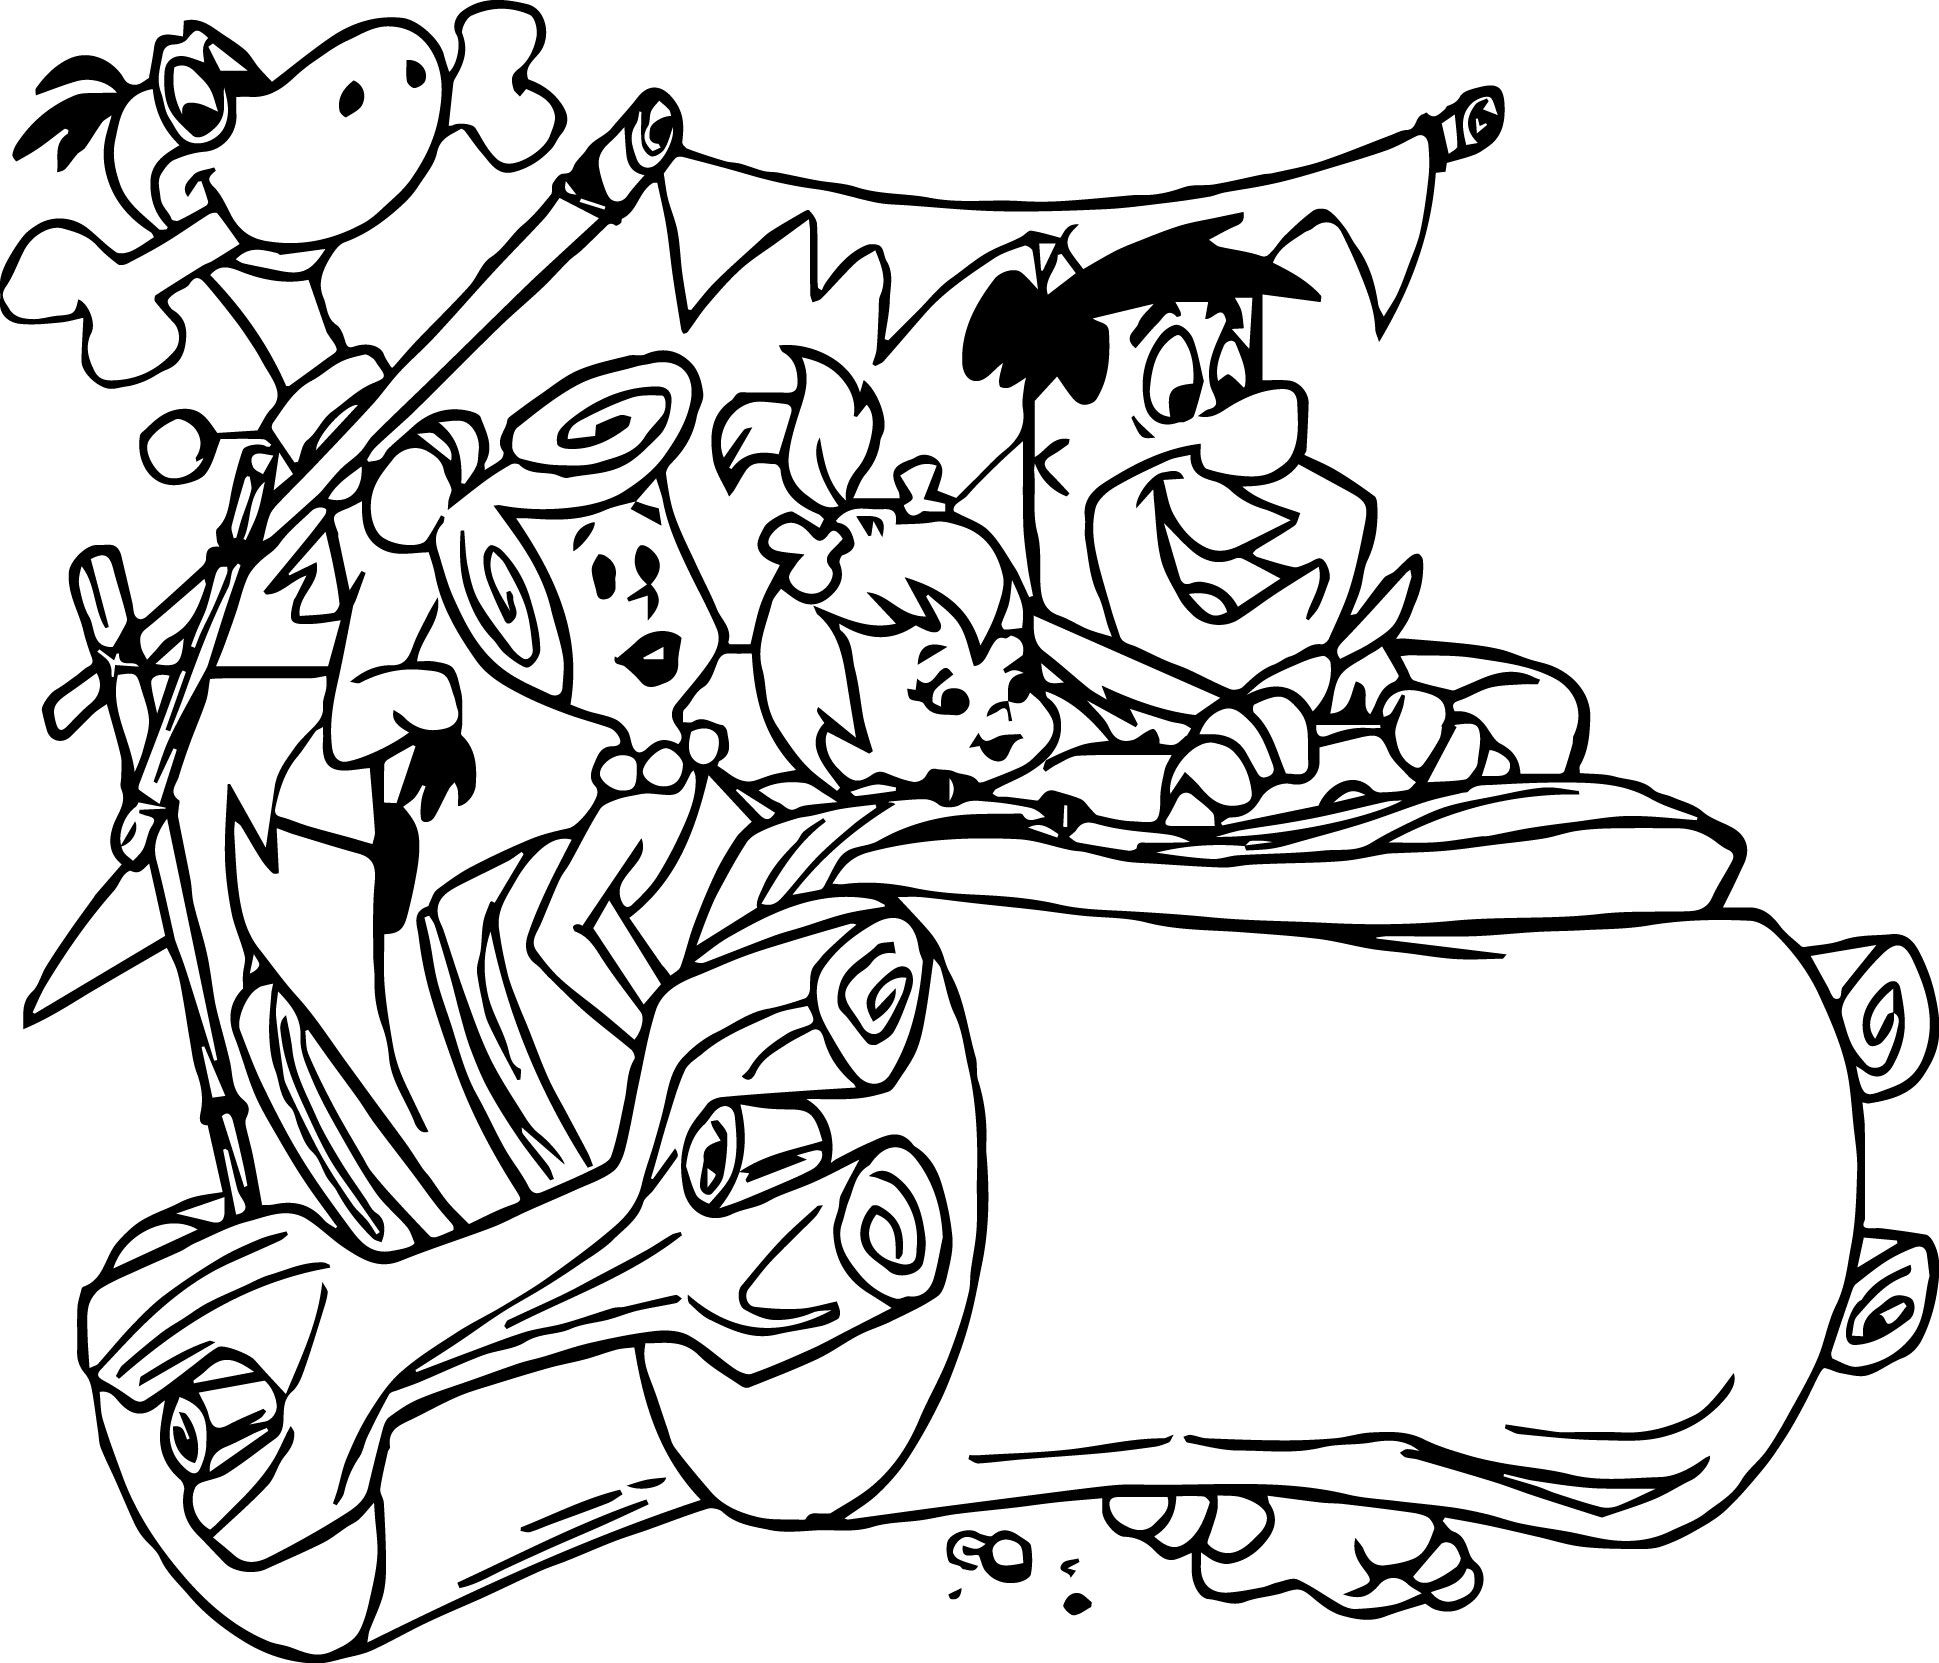 The Flintstones Coloring Pages Wecoloringpage Disney Coloring Pages Free Coloring Pages Coloring Pages For Kids